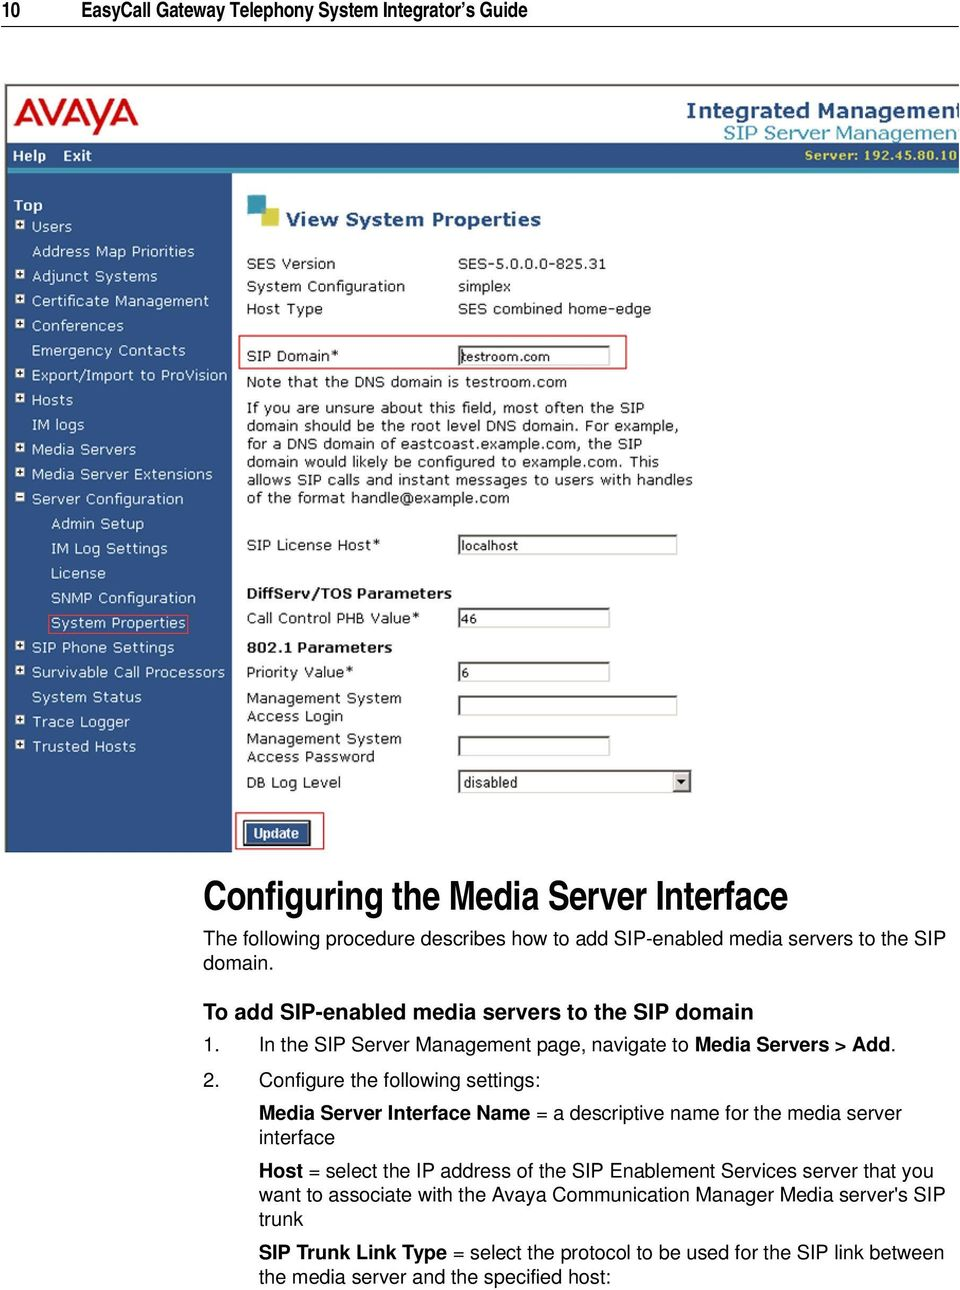 Configure the following settings: Media Server Interface Name = a descriptive name for the media server interface Host = select the IP address of the SIP Enablement Services